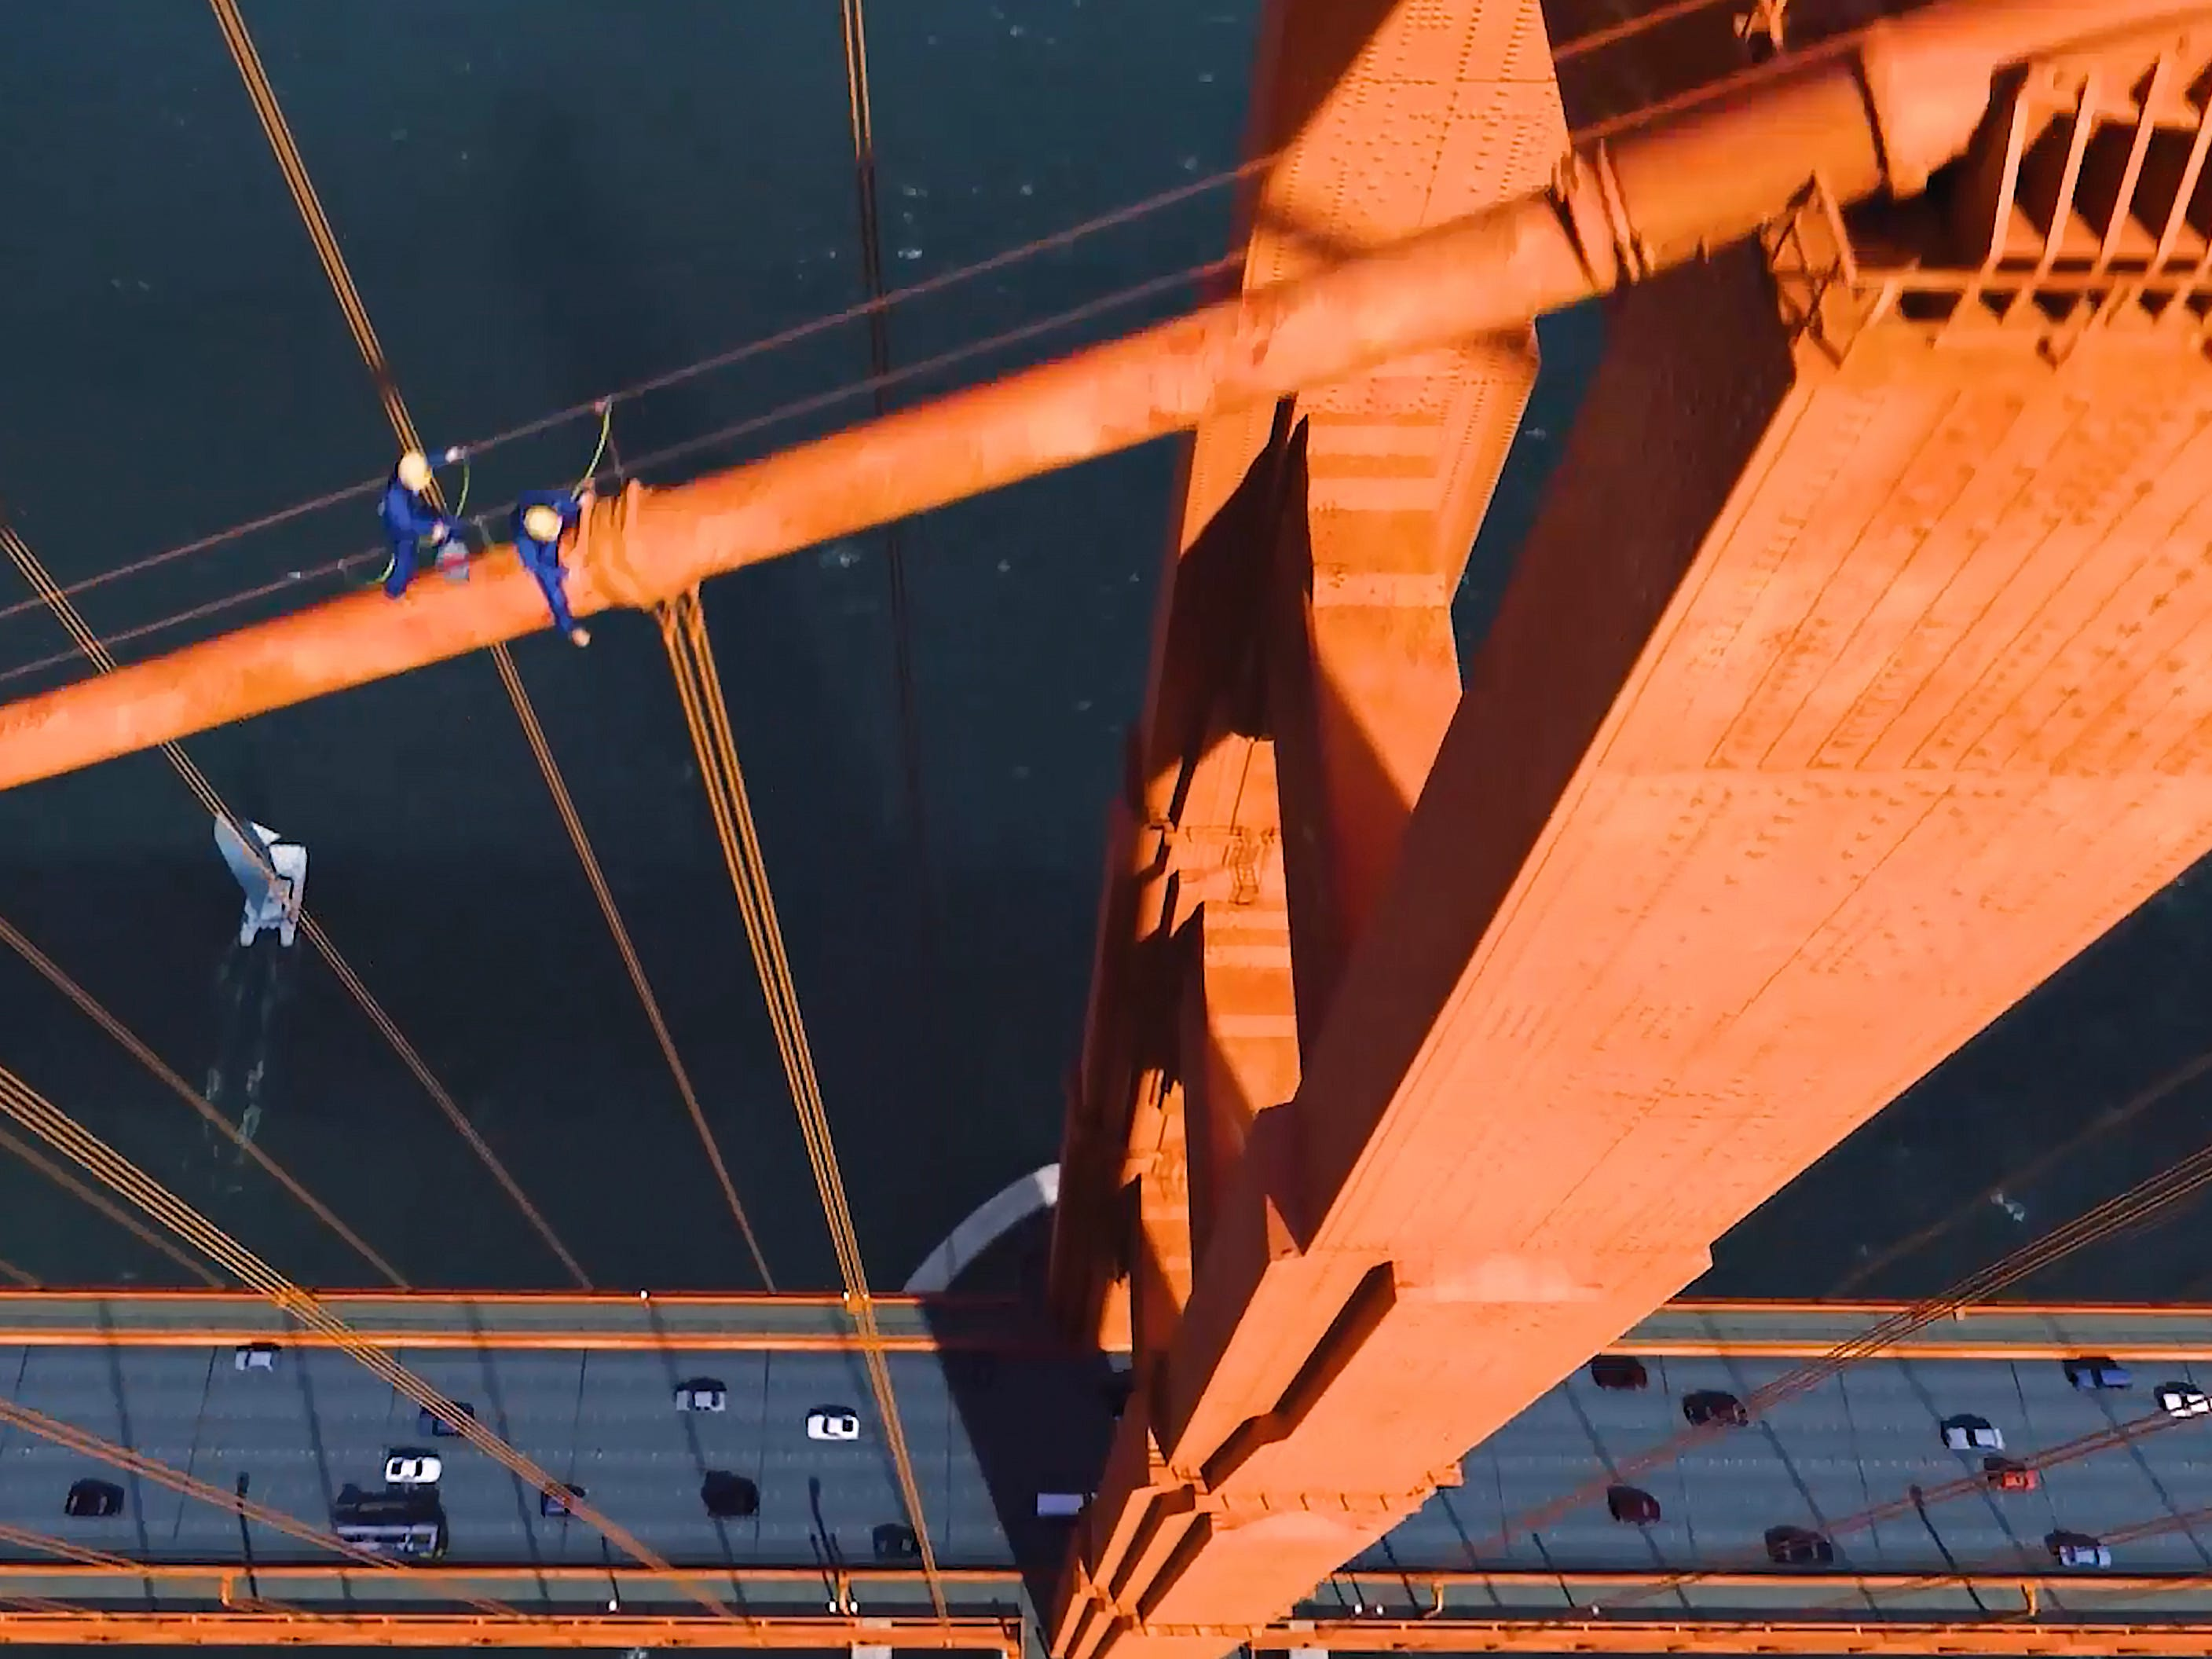 One of the highlights is a journey to the city's iconic Golden Gate Bridge. The scene follows the seagull up into the girders of the bridge for a few slightly harrowing moments.